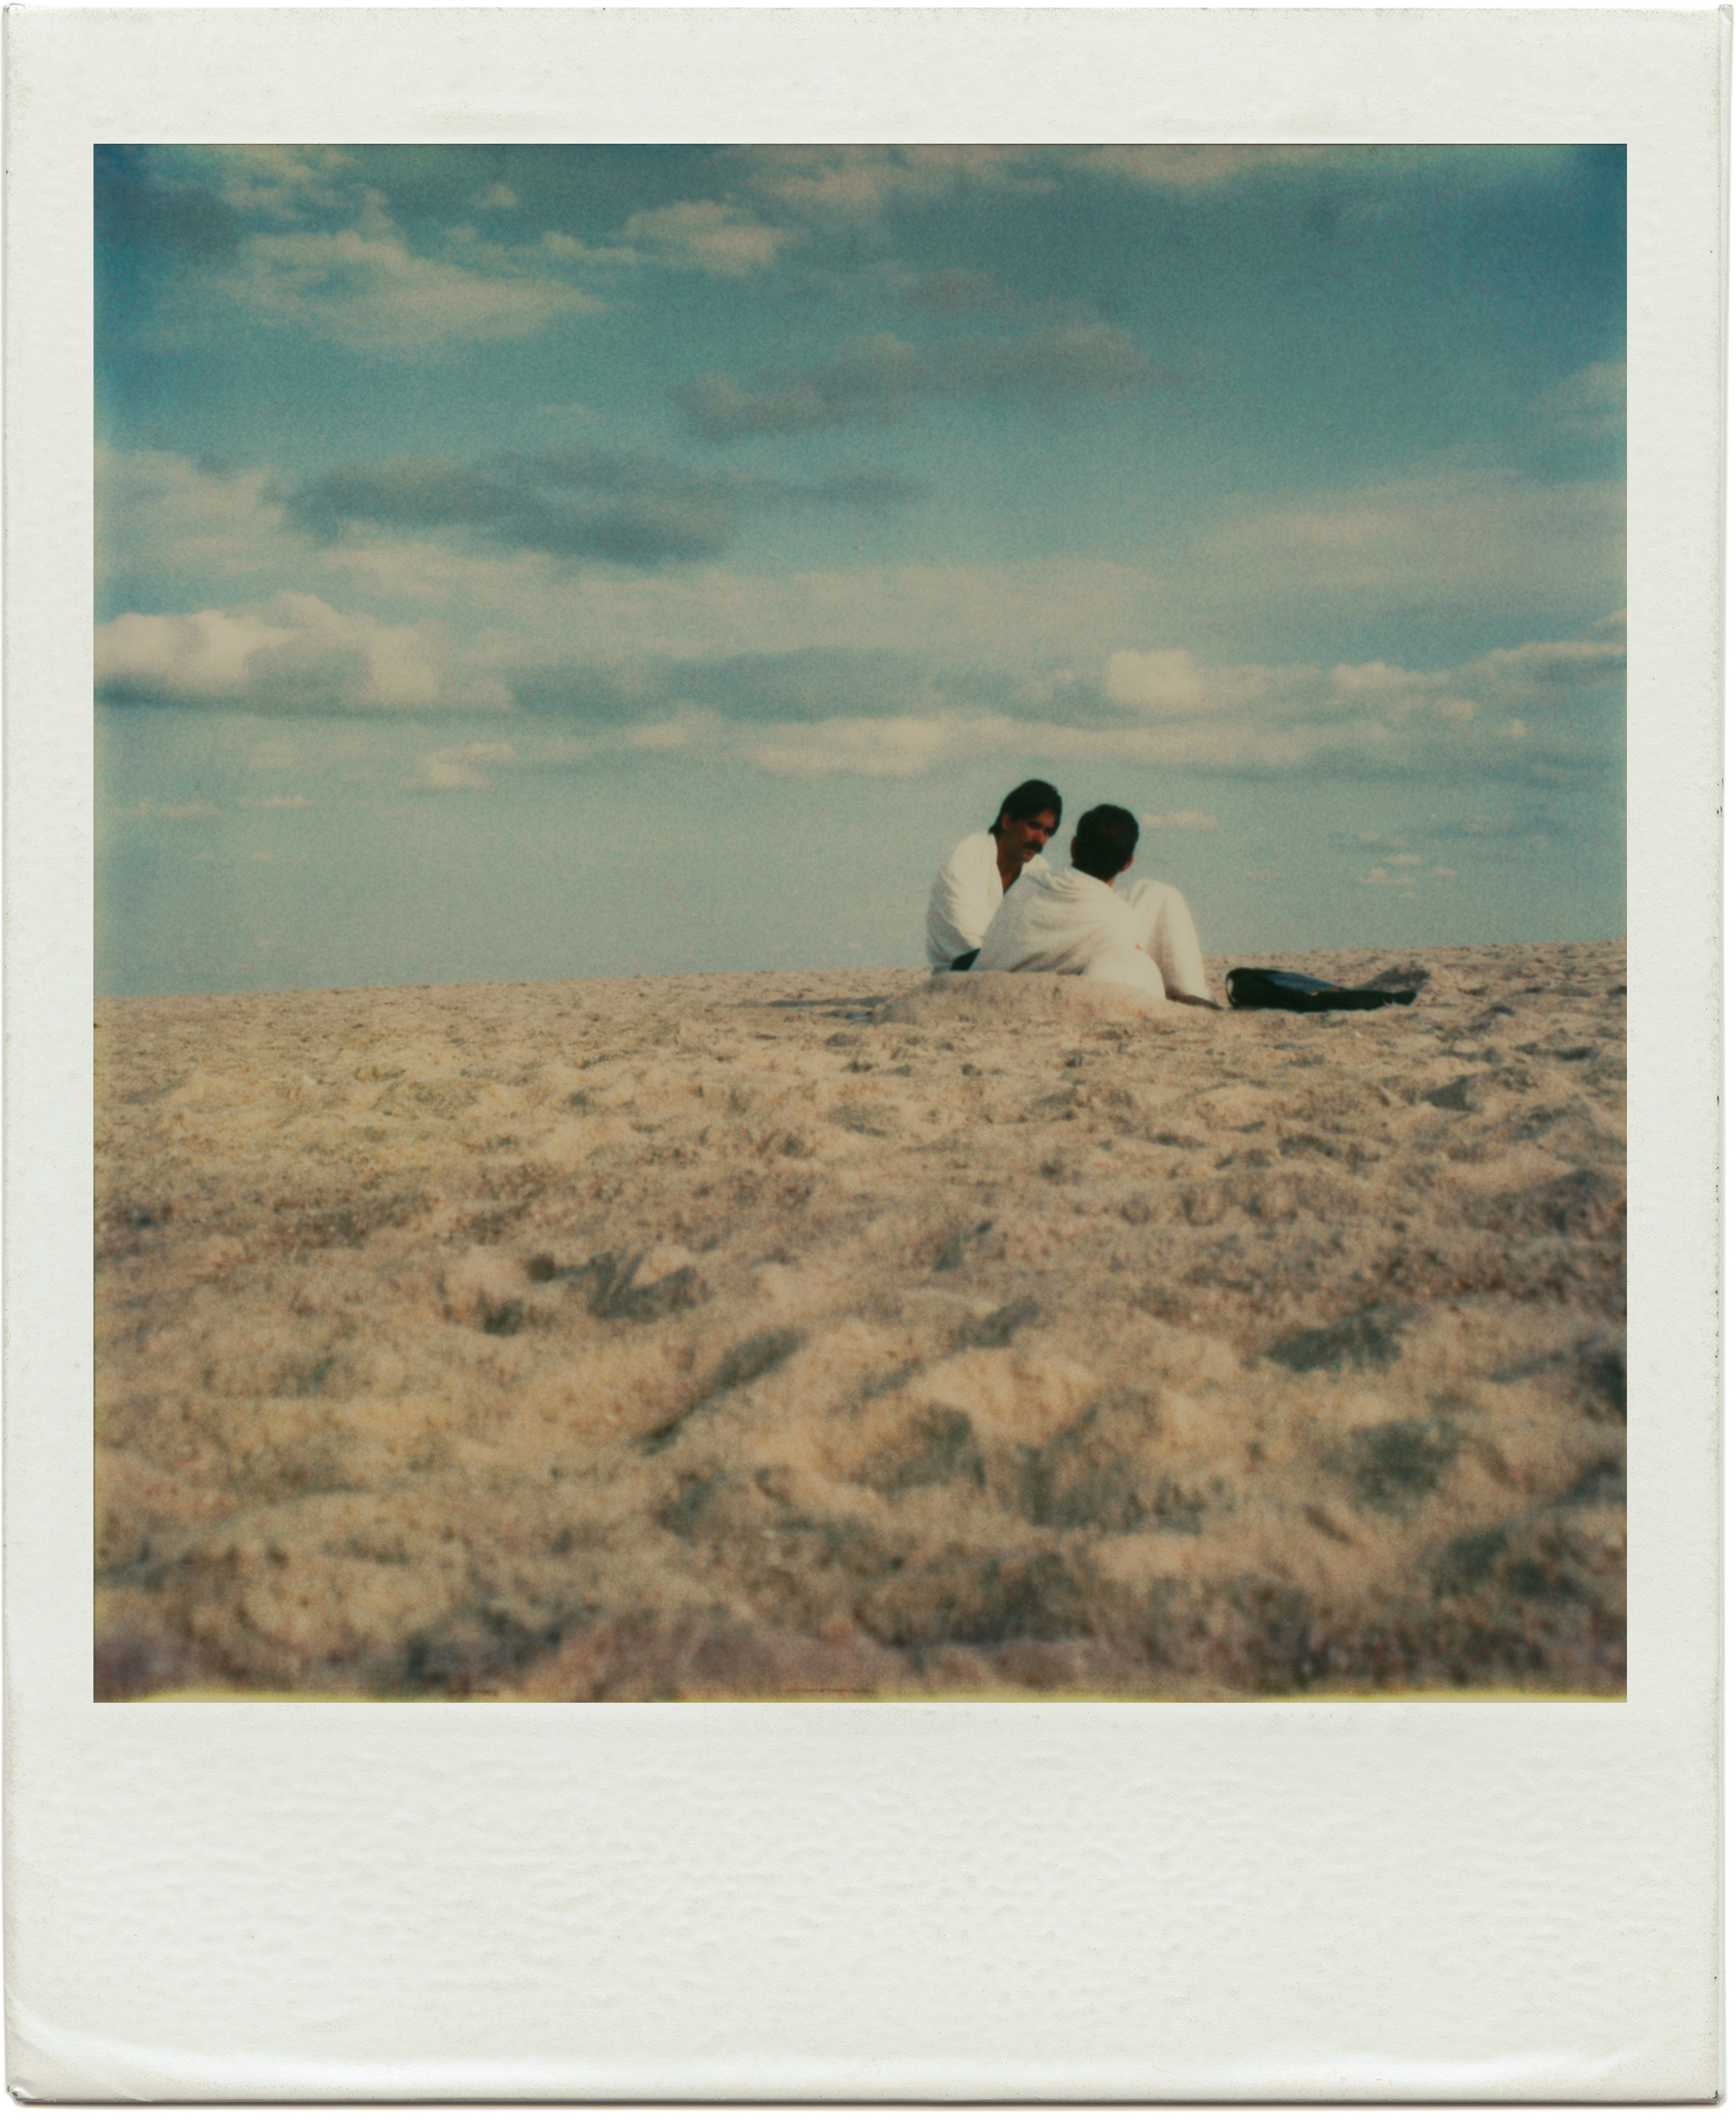 A polaroid provided by the artist Tom Bianchi of two men on a Fire Island beach from his collection of work documenting life on the island from 1970 to 1983